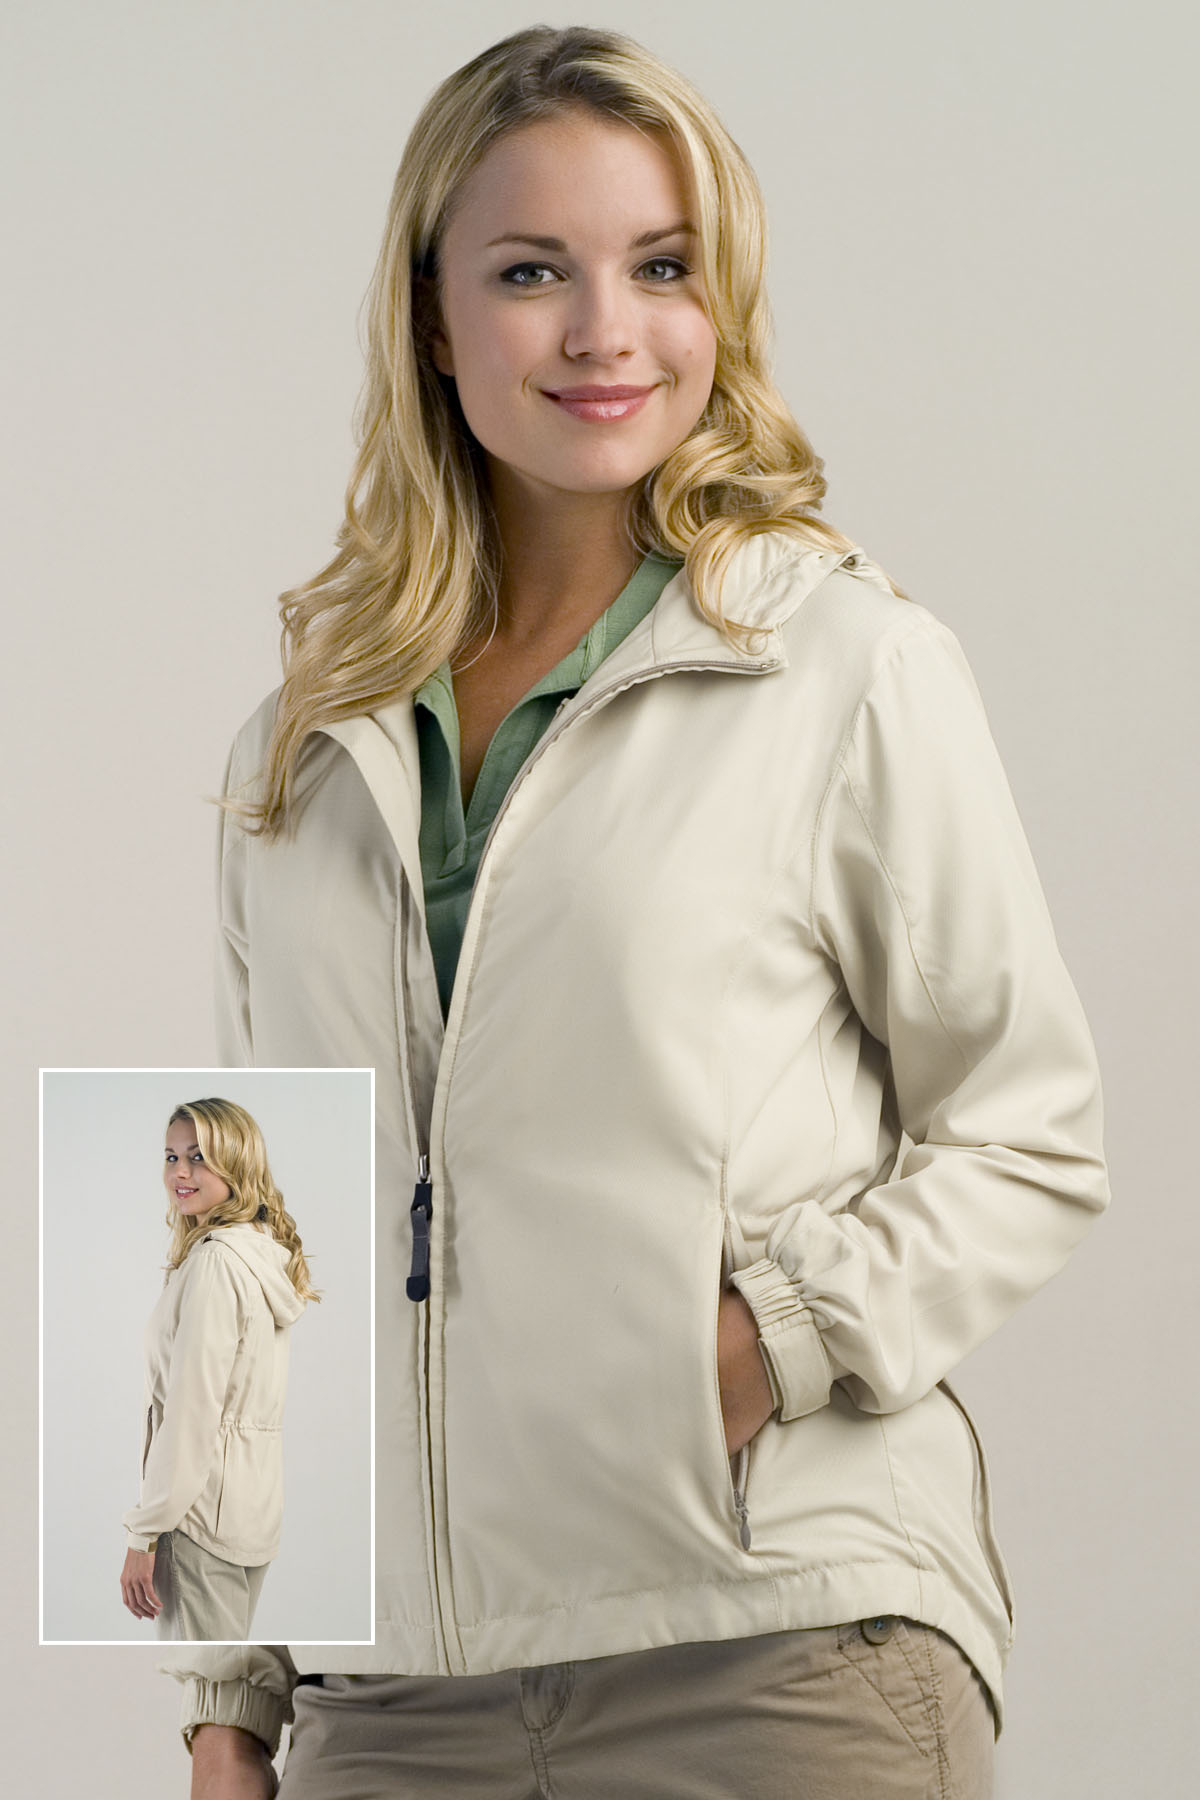 Vantage 7291 - Women's Lightweight Packable Rain Jacket